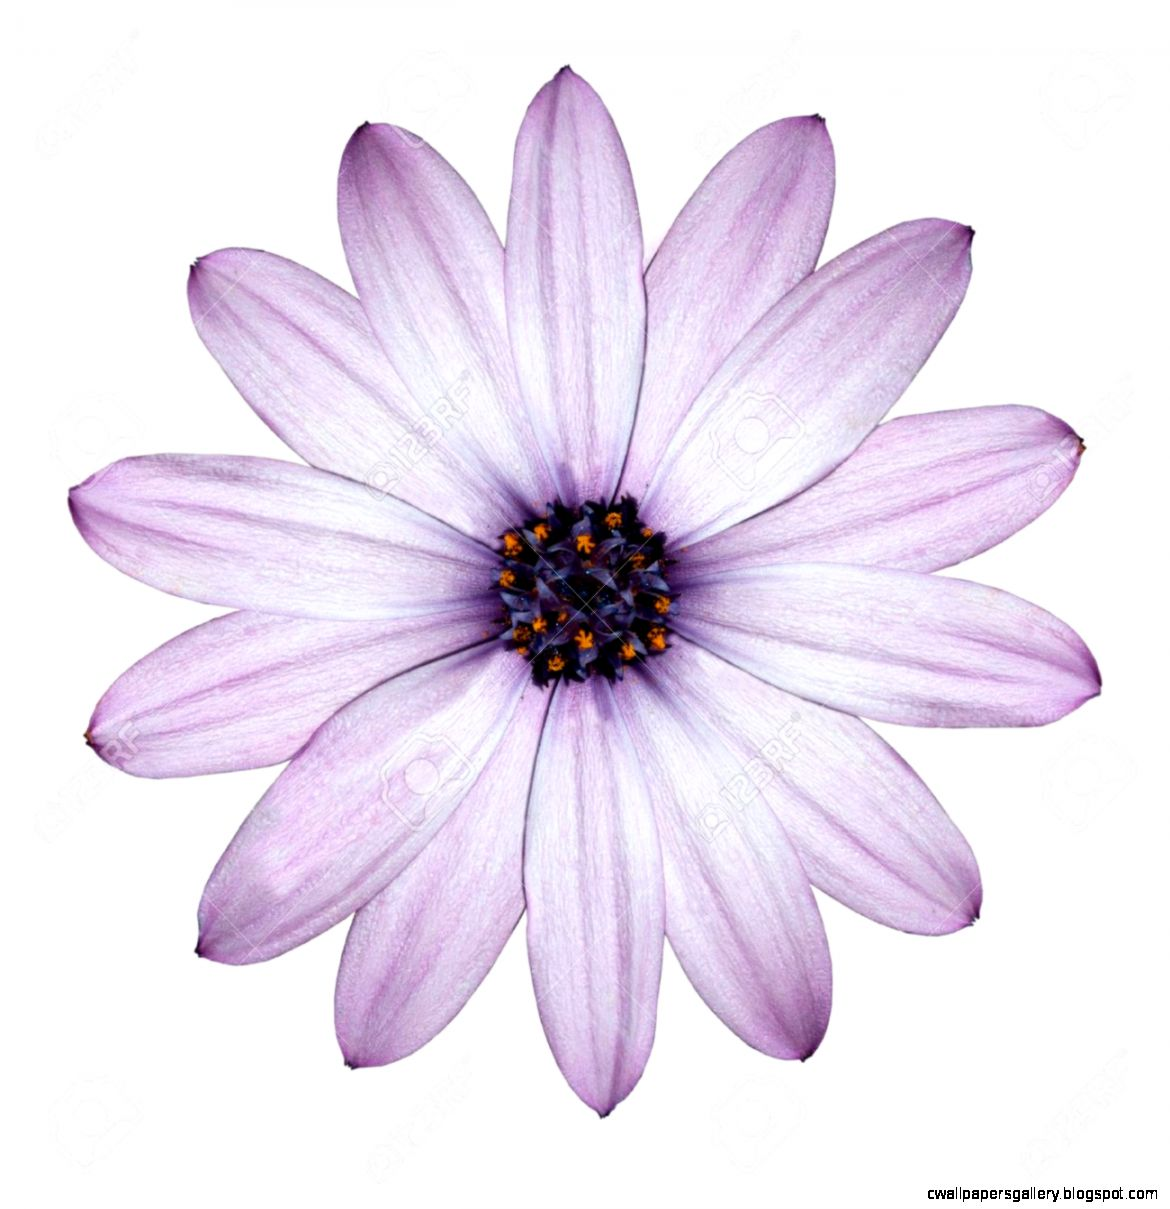 Purple flowers white background wallpapers gallery view original size white background purple flower royalty free mightylinksfo Choice Image